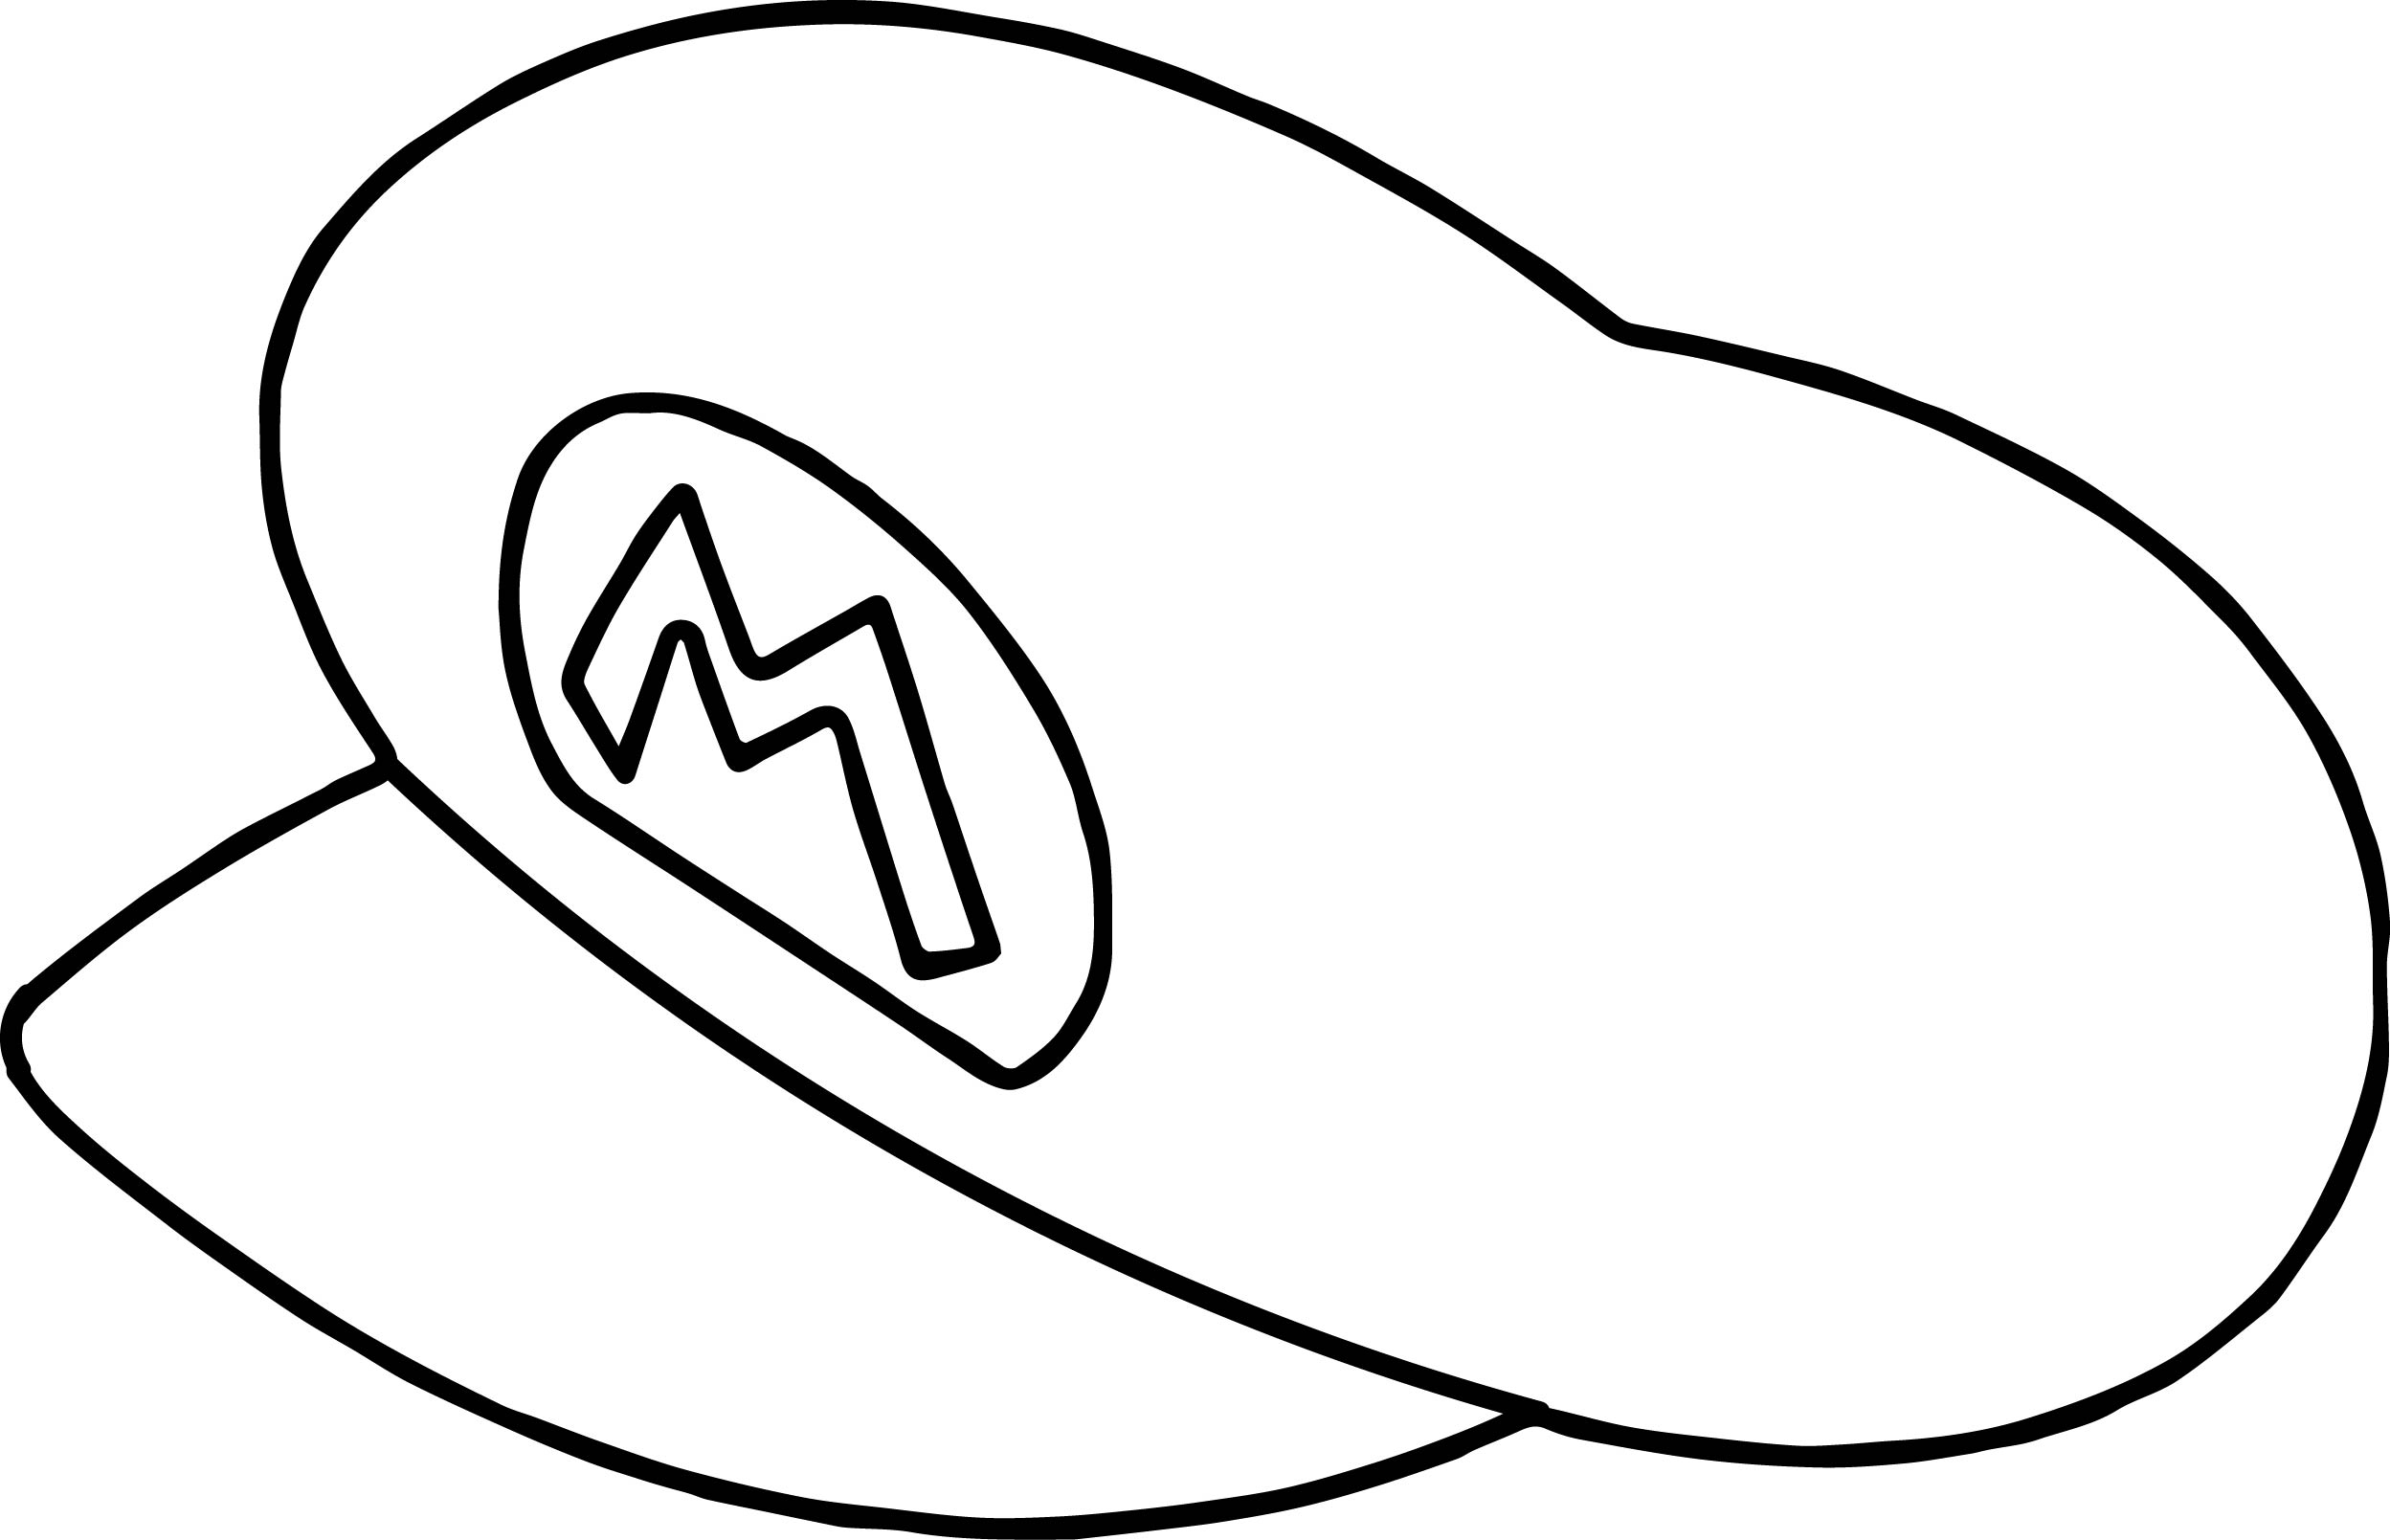 Super Mario Hat Outline Coloring Page Wecoloringpage Com